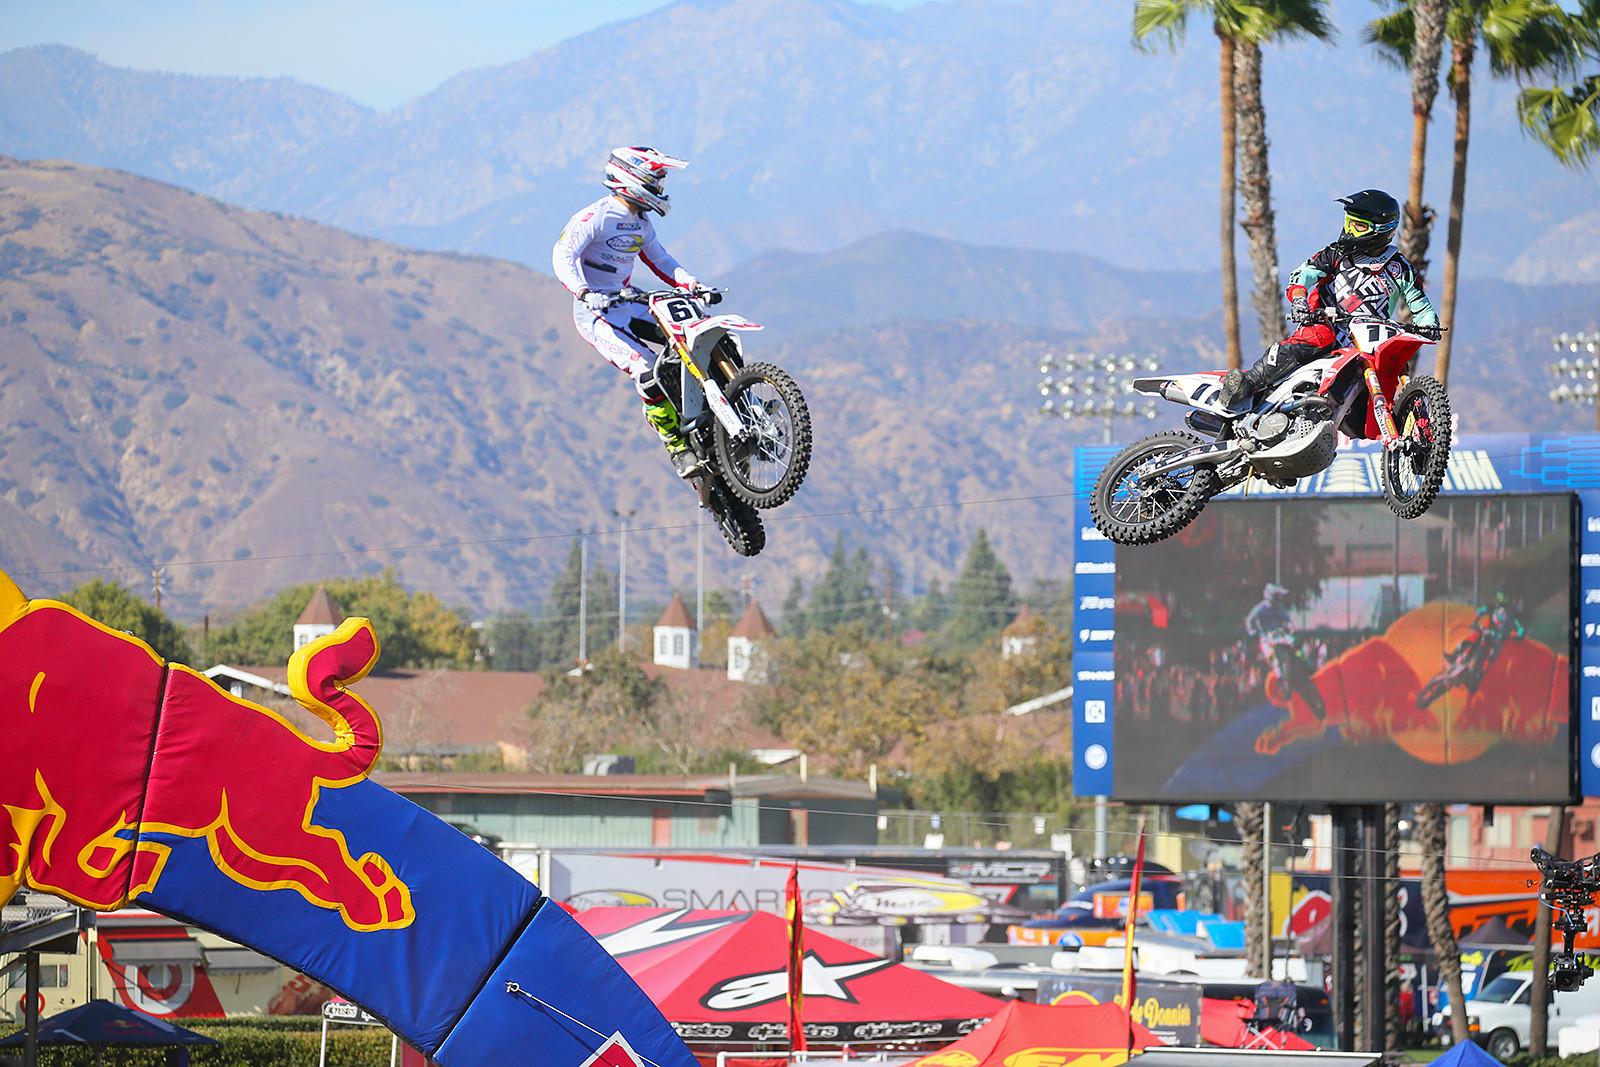 Vince Friese and Kyle Chisholm - Photo Blast: Red Bull Straight Rhythm - Motocross Pictures - Vital MX